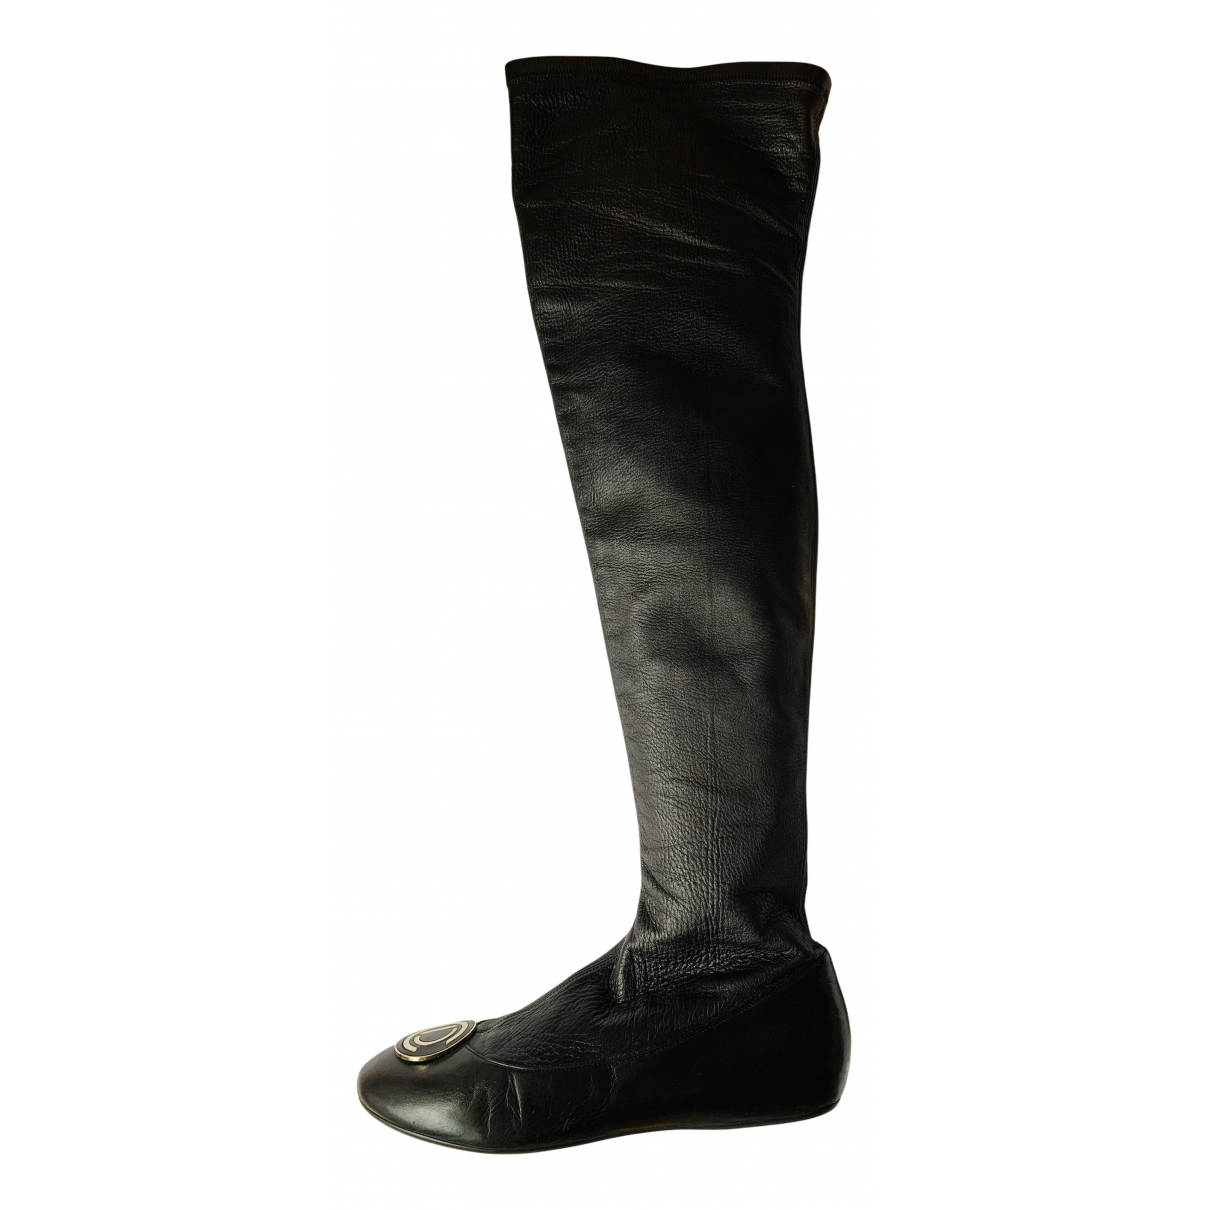 Dior N Black Leather Boots for Women 39 EU